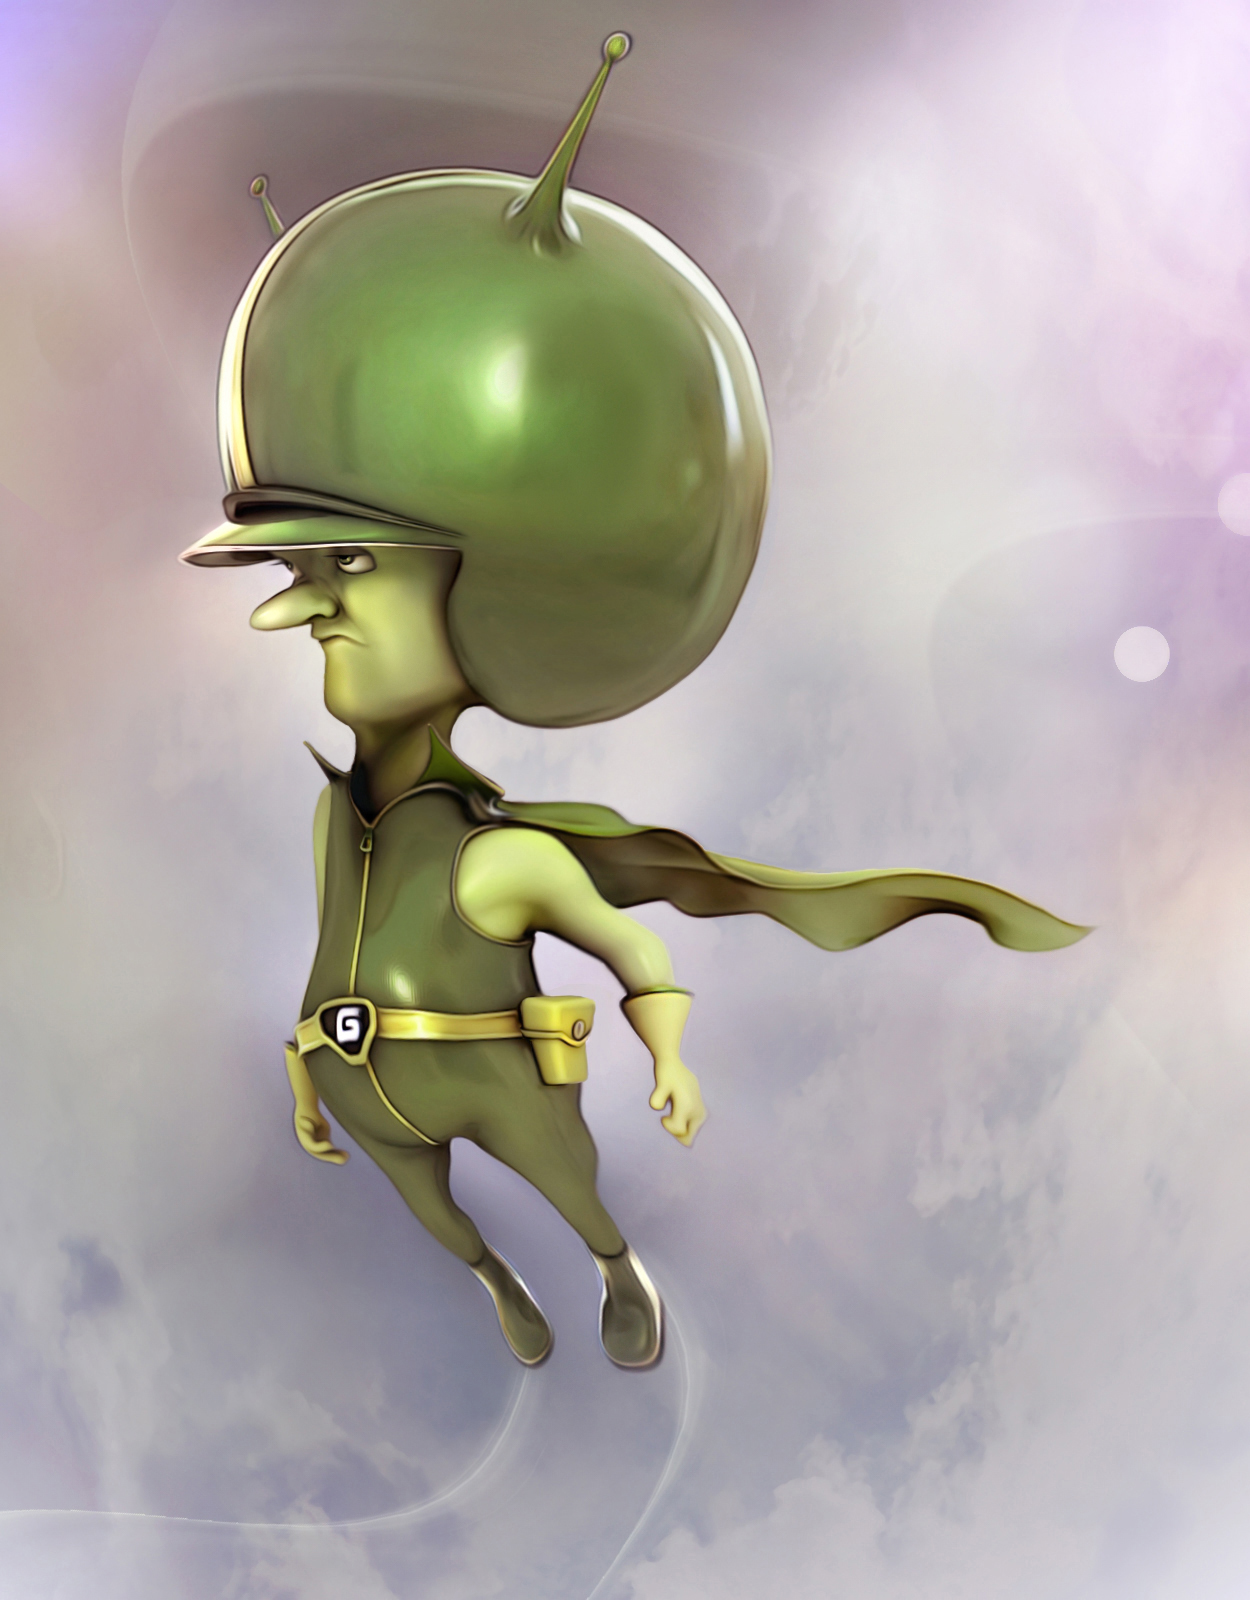 The Great Gazoo by Odessey